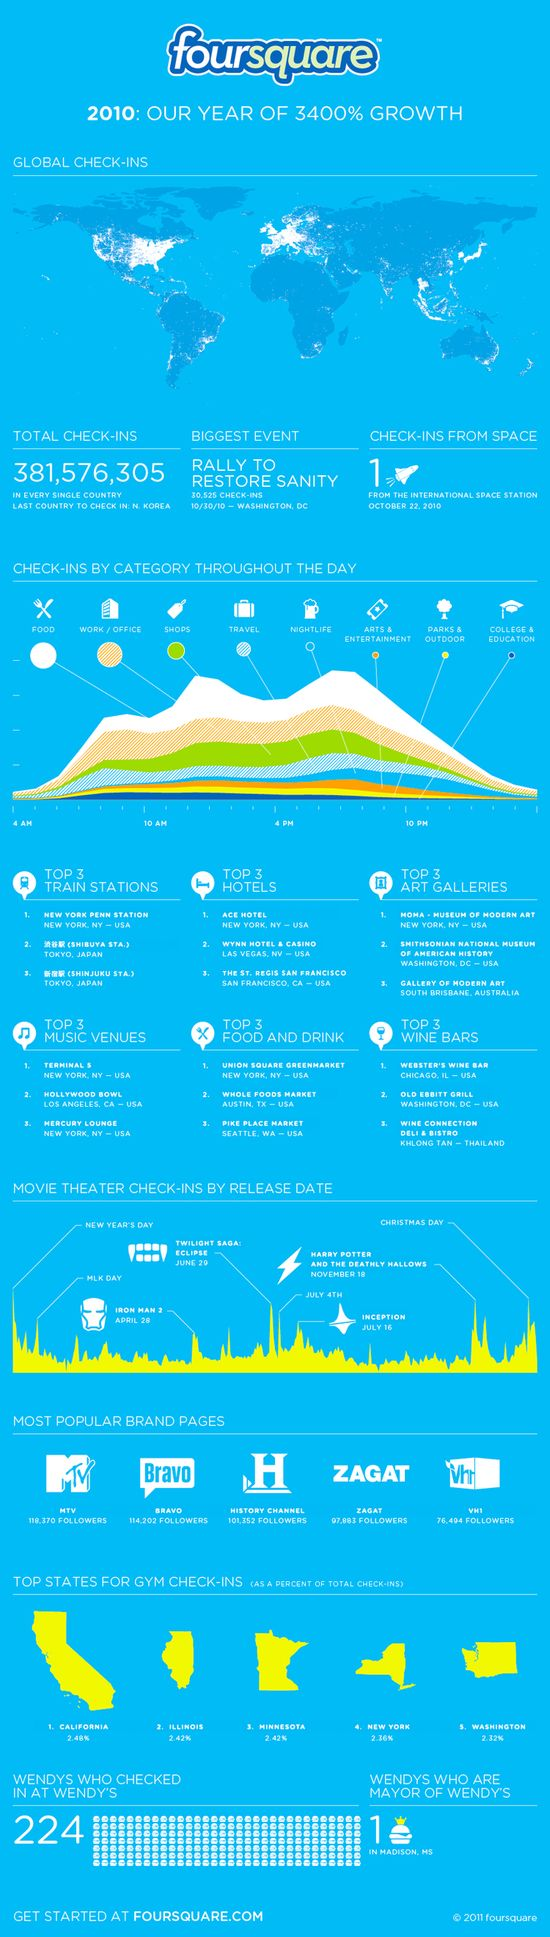 INFOGRAPHIC - Foursquare - 2010 Our Year of 3400% Growth